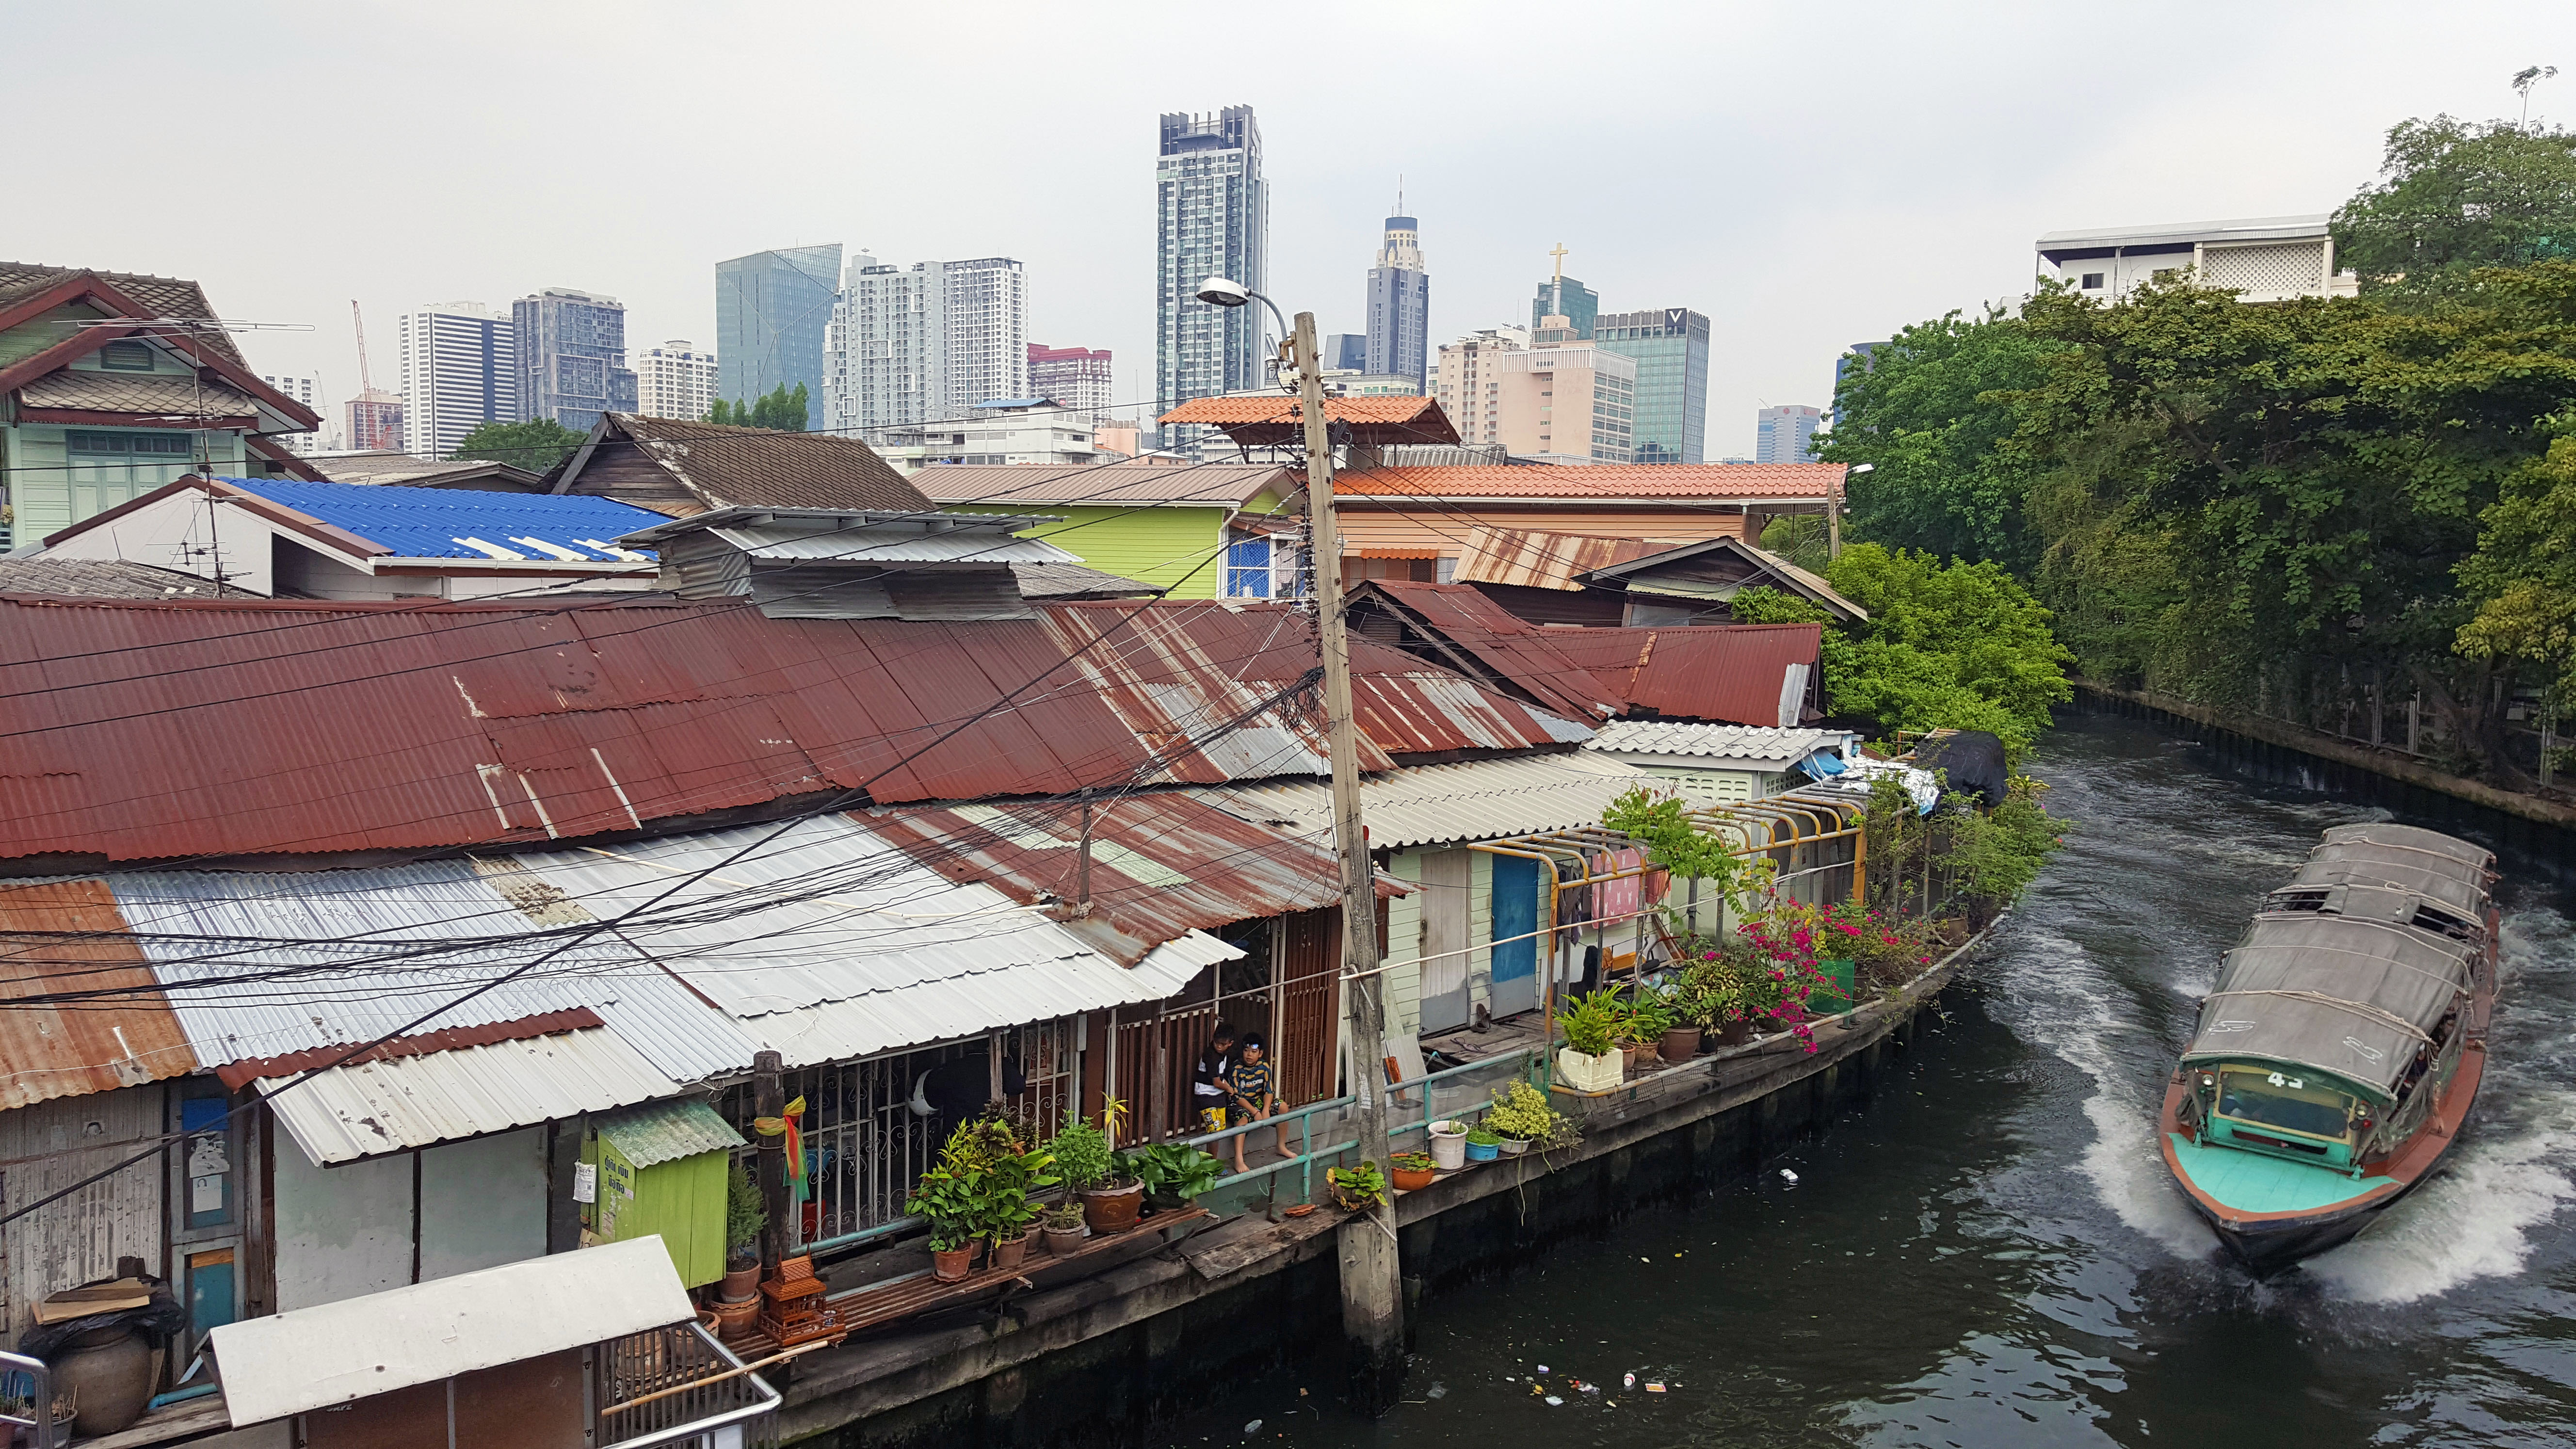 Contrast of old and new buildings, Bangkok